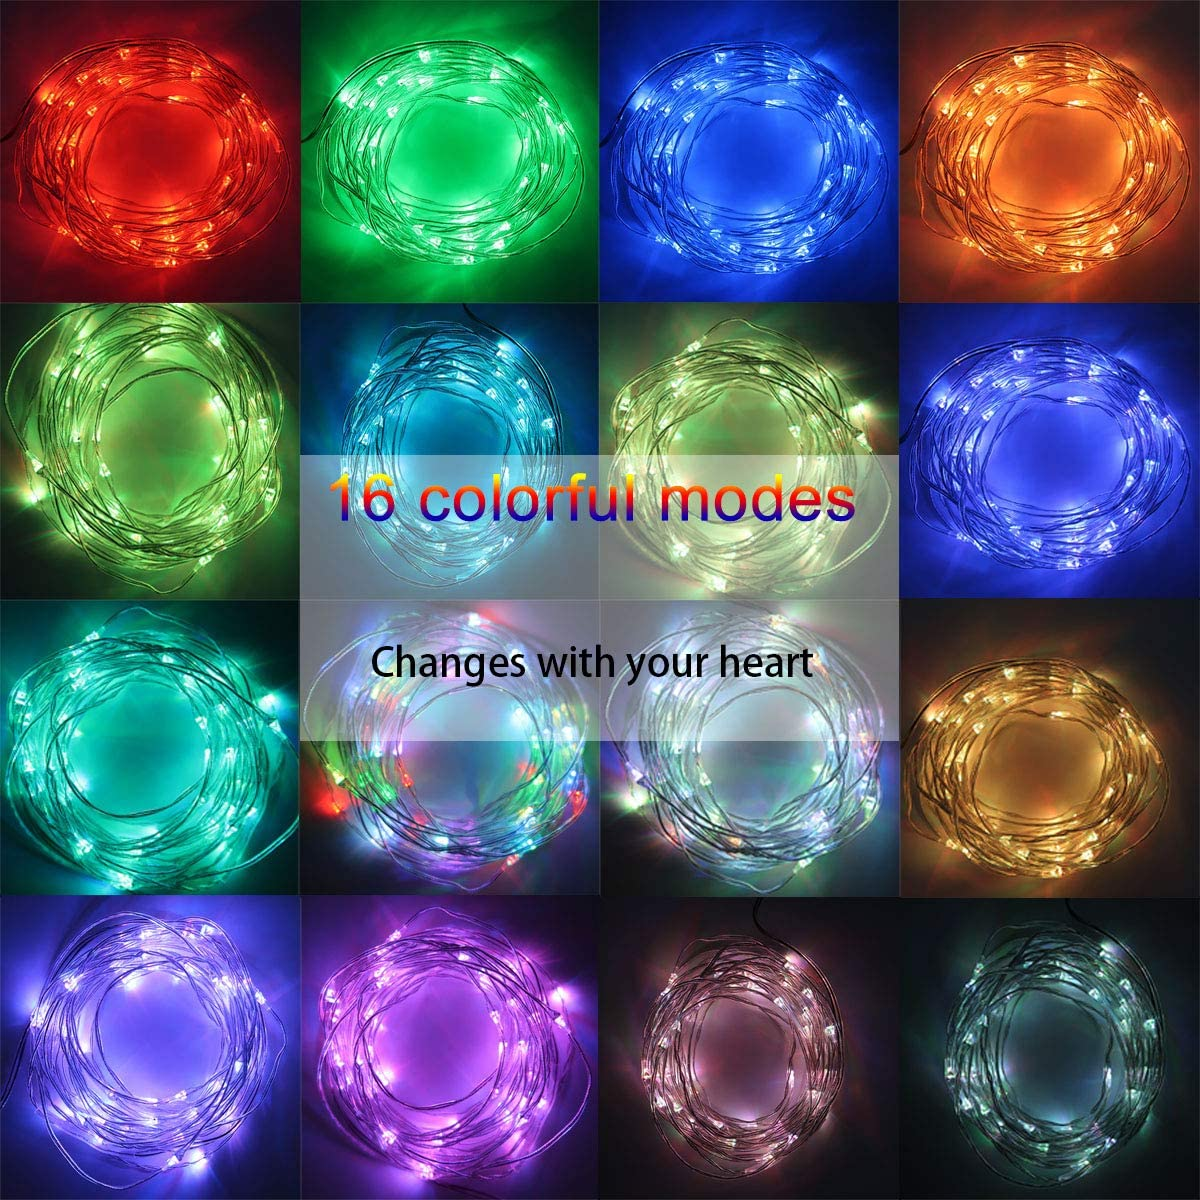 LED Rope Lights 16Colors 16.4Ft Vibrant Bright 50LEDs Strip Kit with Remote Control RGB Colors Changing 3XAA Battery Operated for Seasonal Decor Trailer Porch Rope Lights Waterproof Holiday Gathering